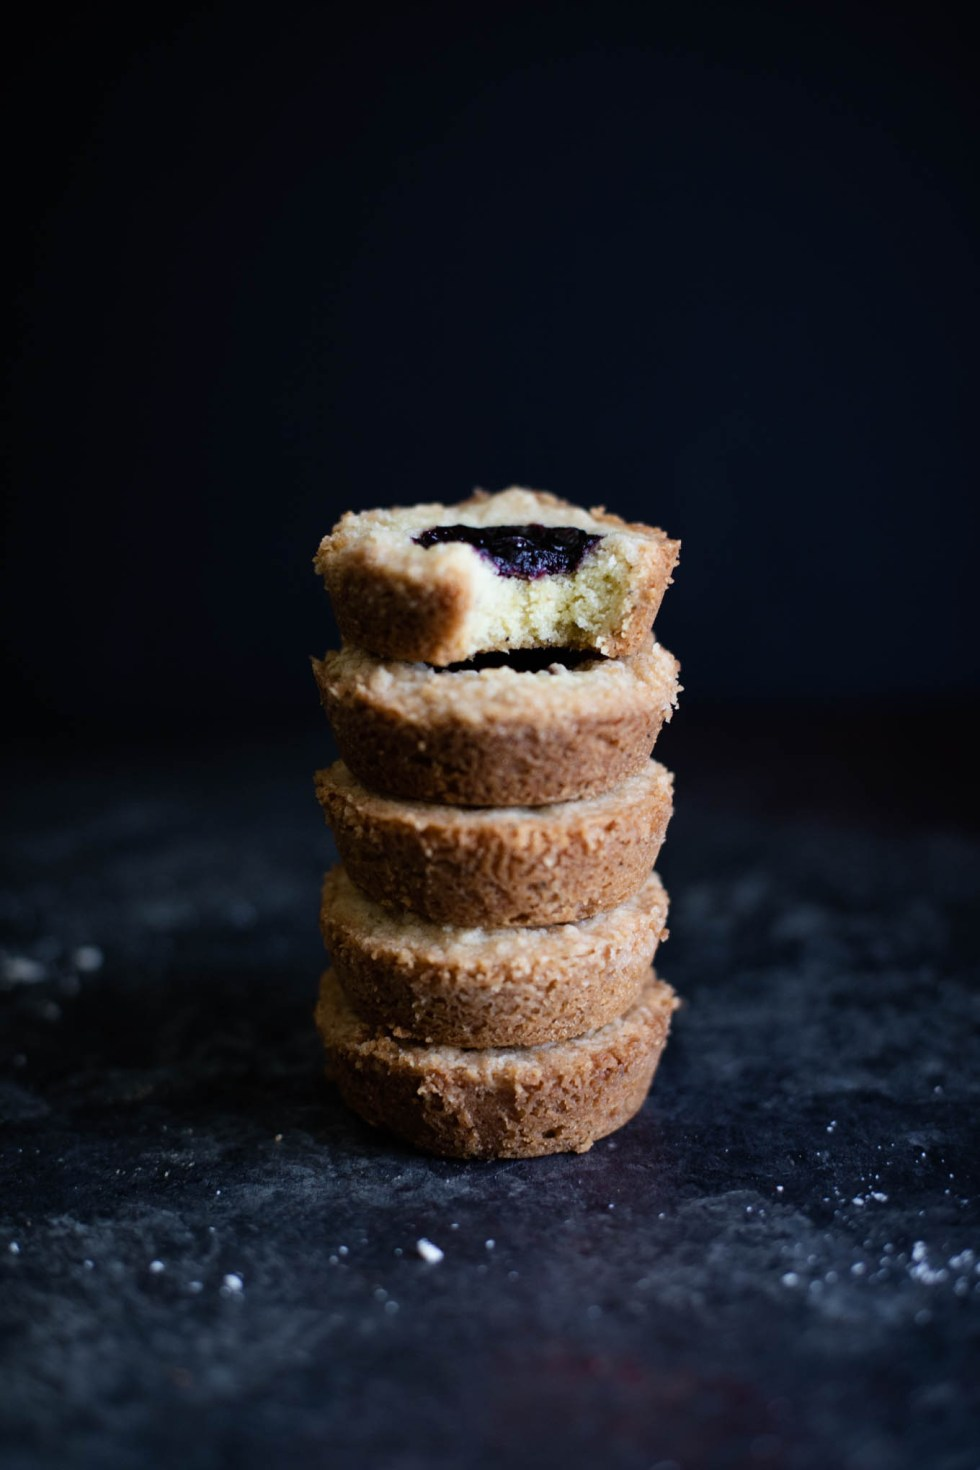 Buttery shortbread cookies infused with Earl Grey butter, topped with blackberry jam, and sprinkled with crumb topping. These cookies are a classy treat and easy to share!